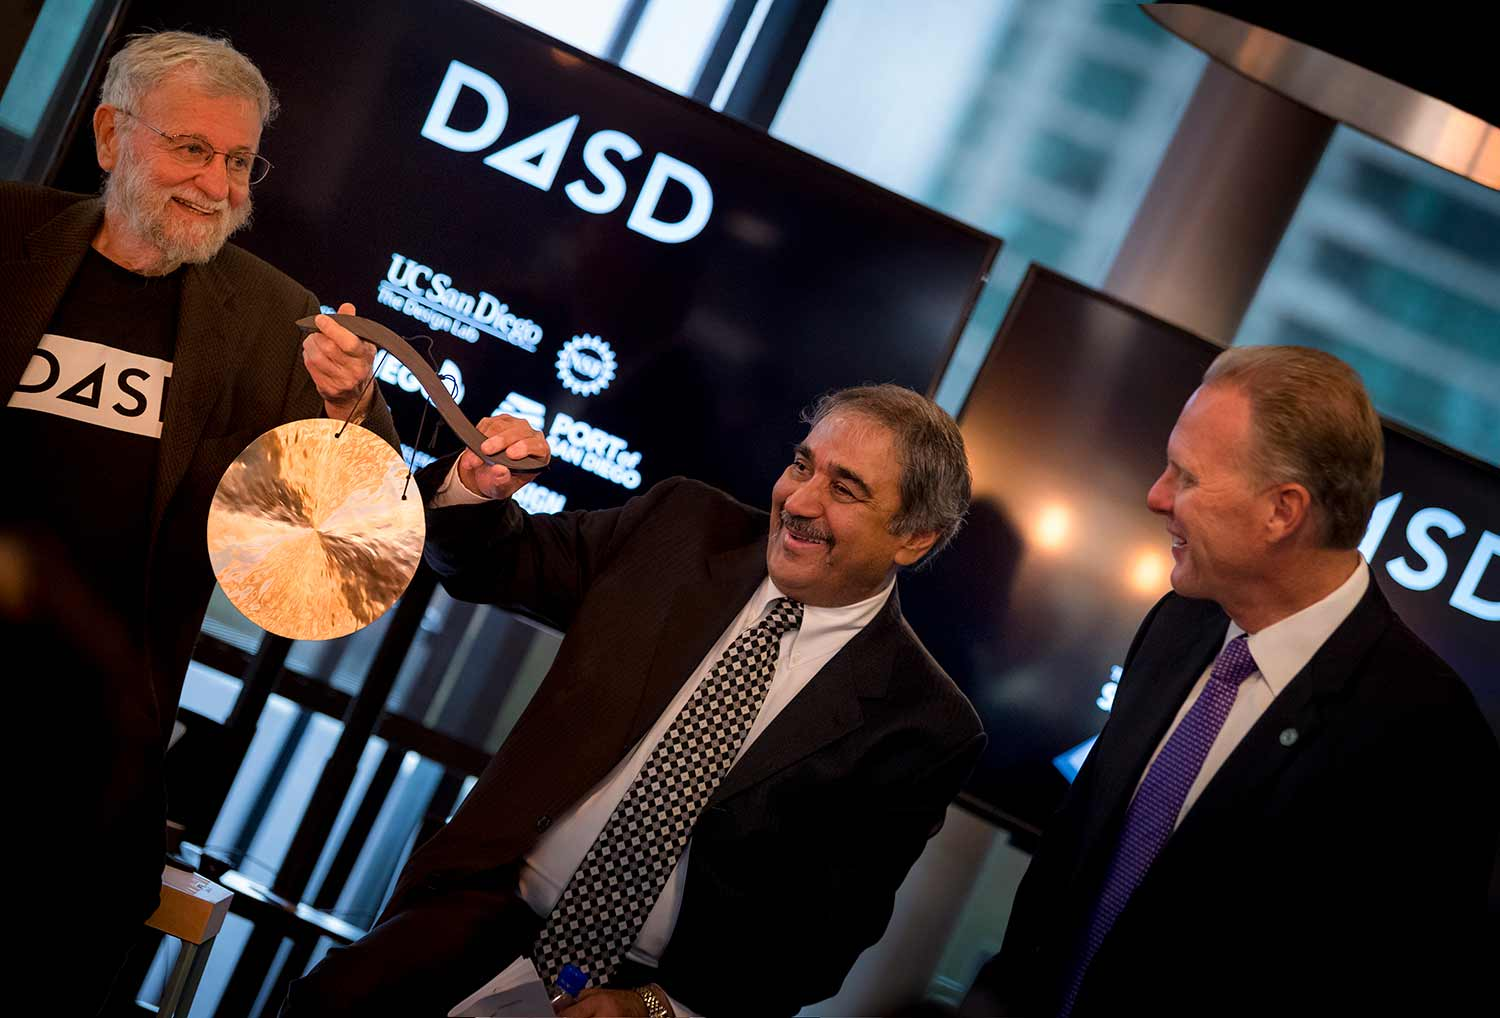 Don Norman, Pradeep Khosla and Kevin Faulconer bang a gong to kick off D4SD